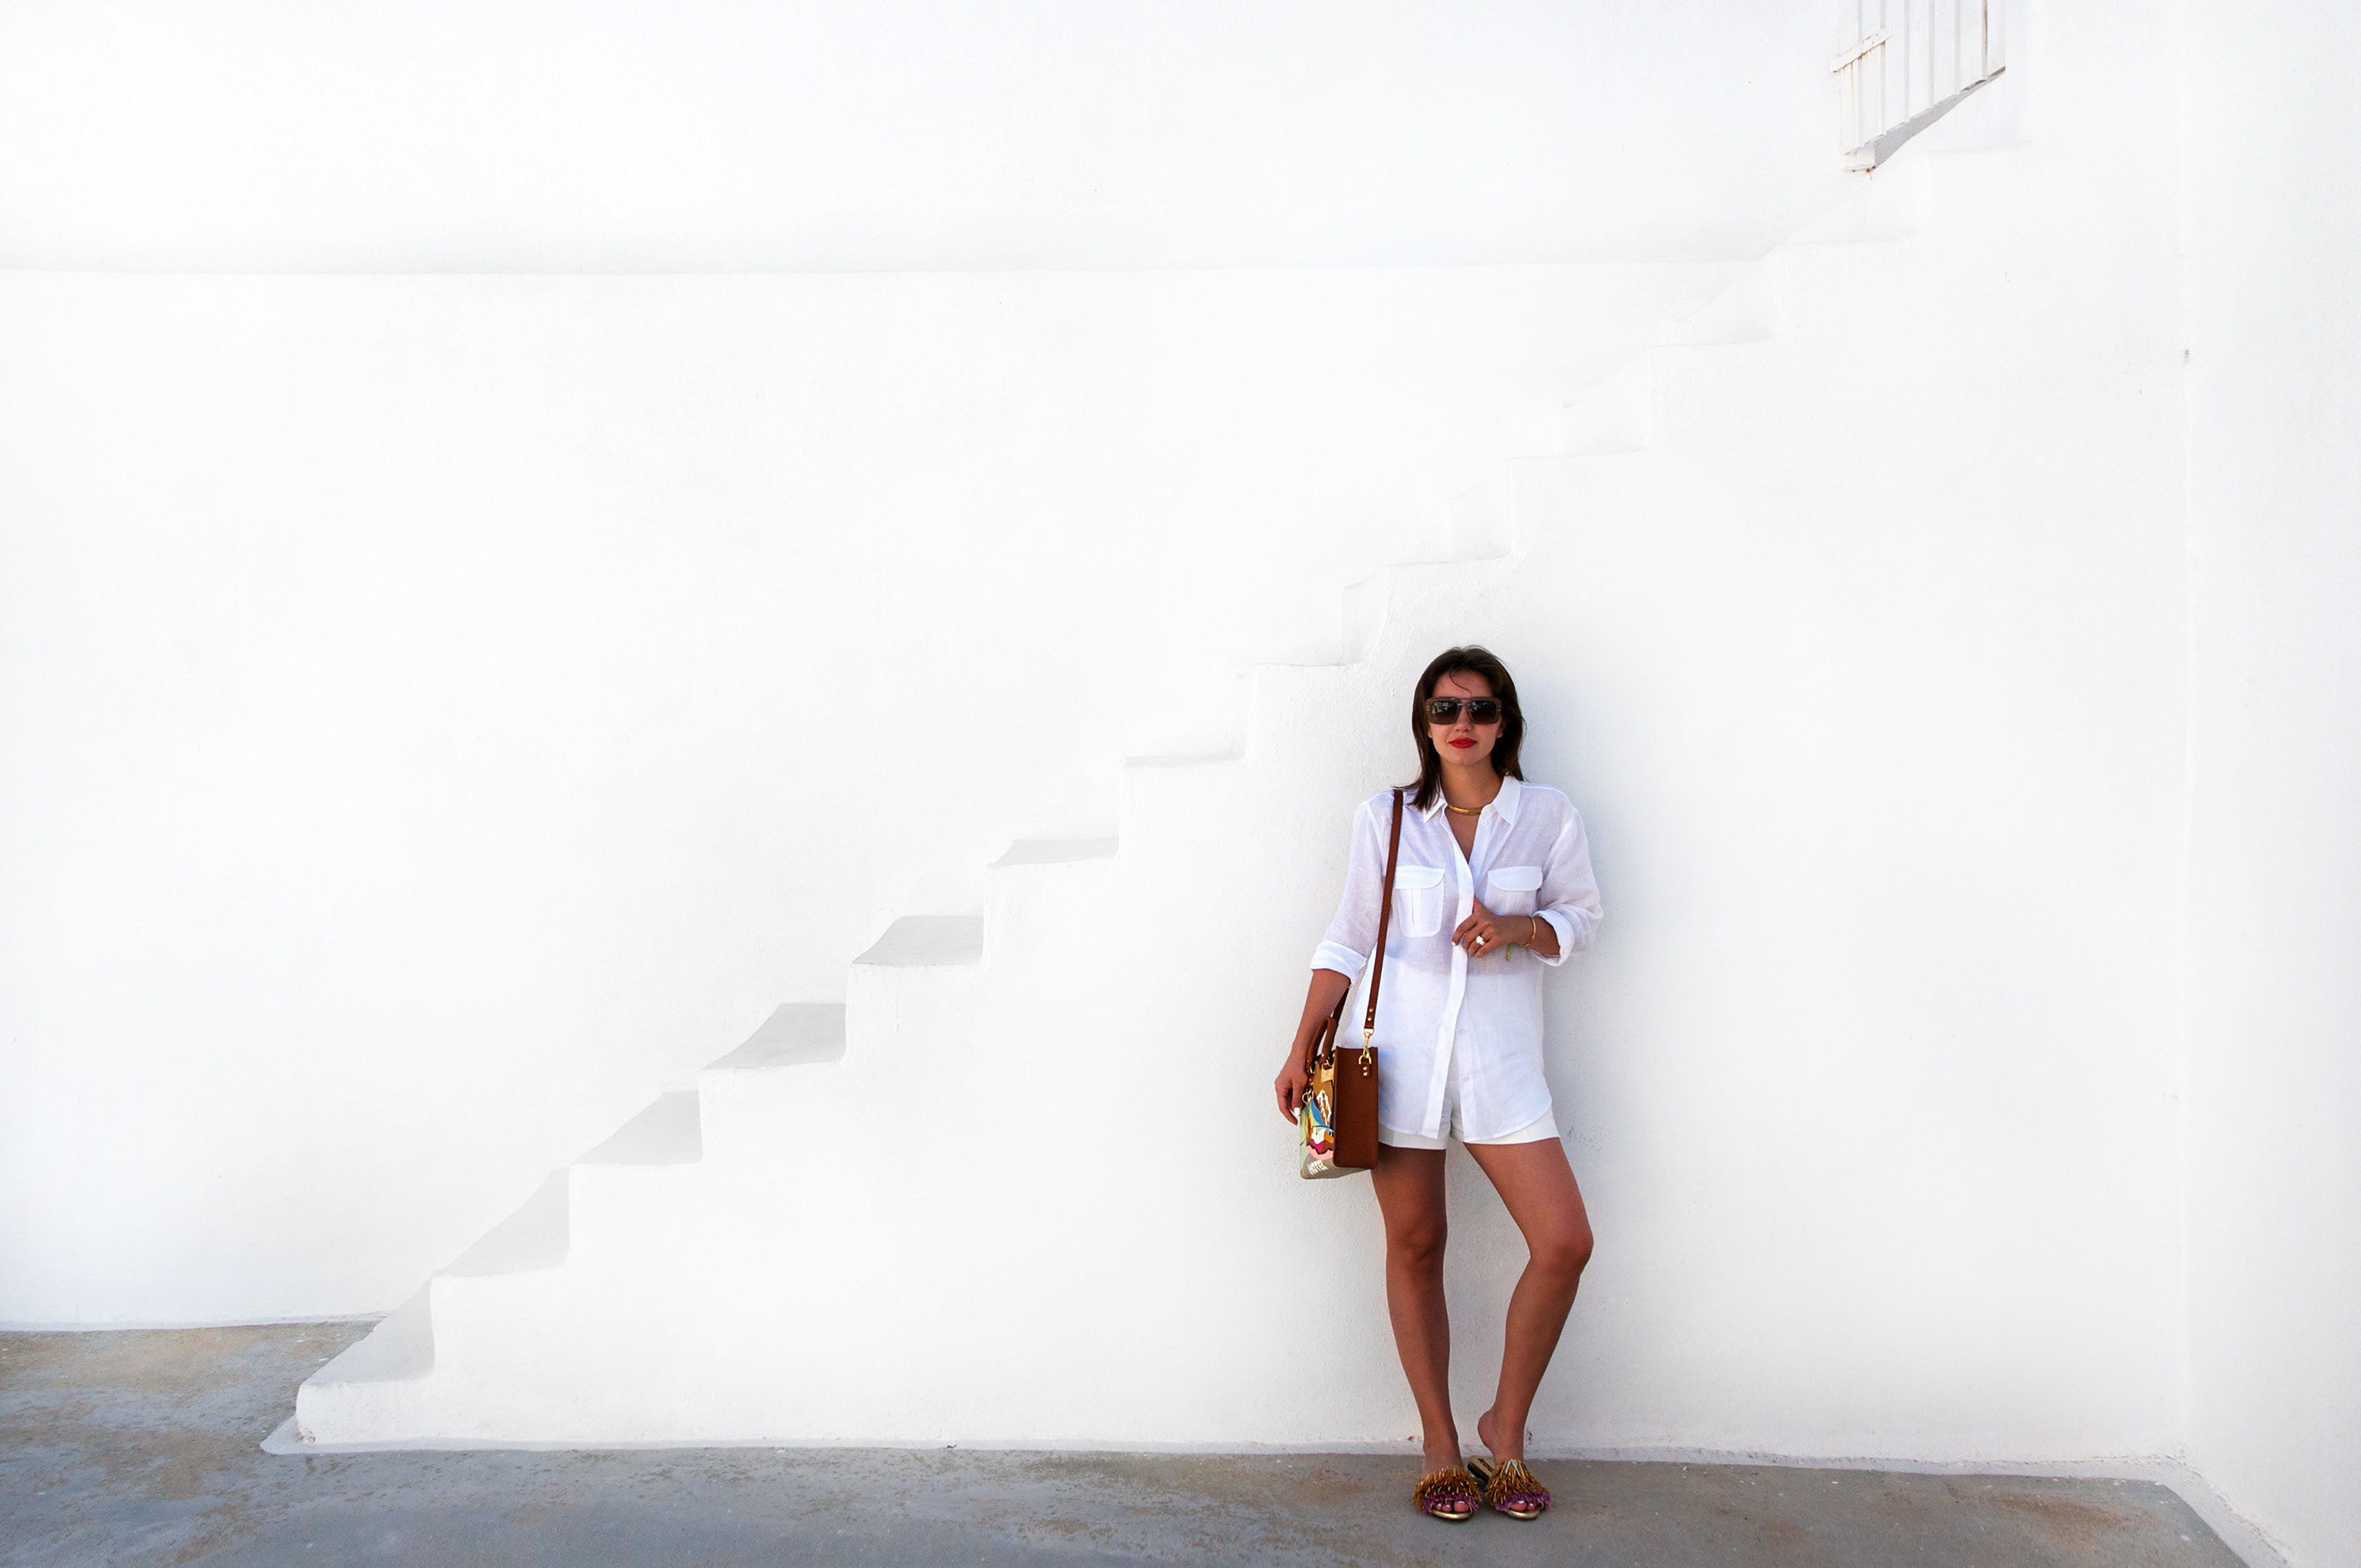 7 More Minutes. Fashion, travel and lifestyle blog by Alyona Gasimova. Santorini. Greece. Chasing The Sunset. www.7moreminutes.com